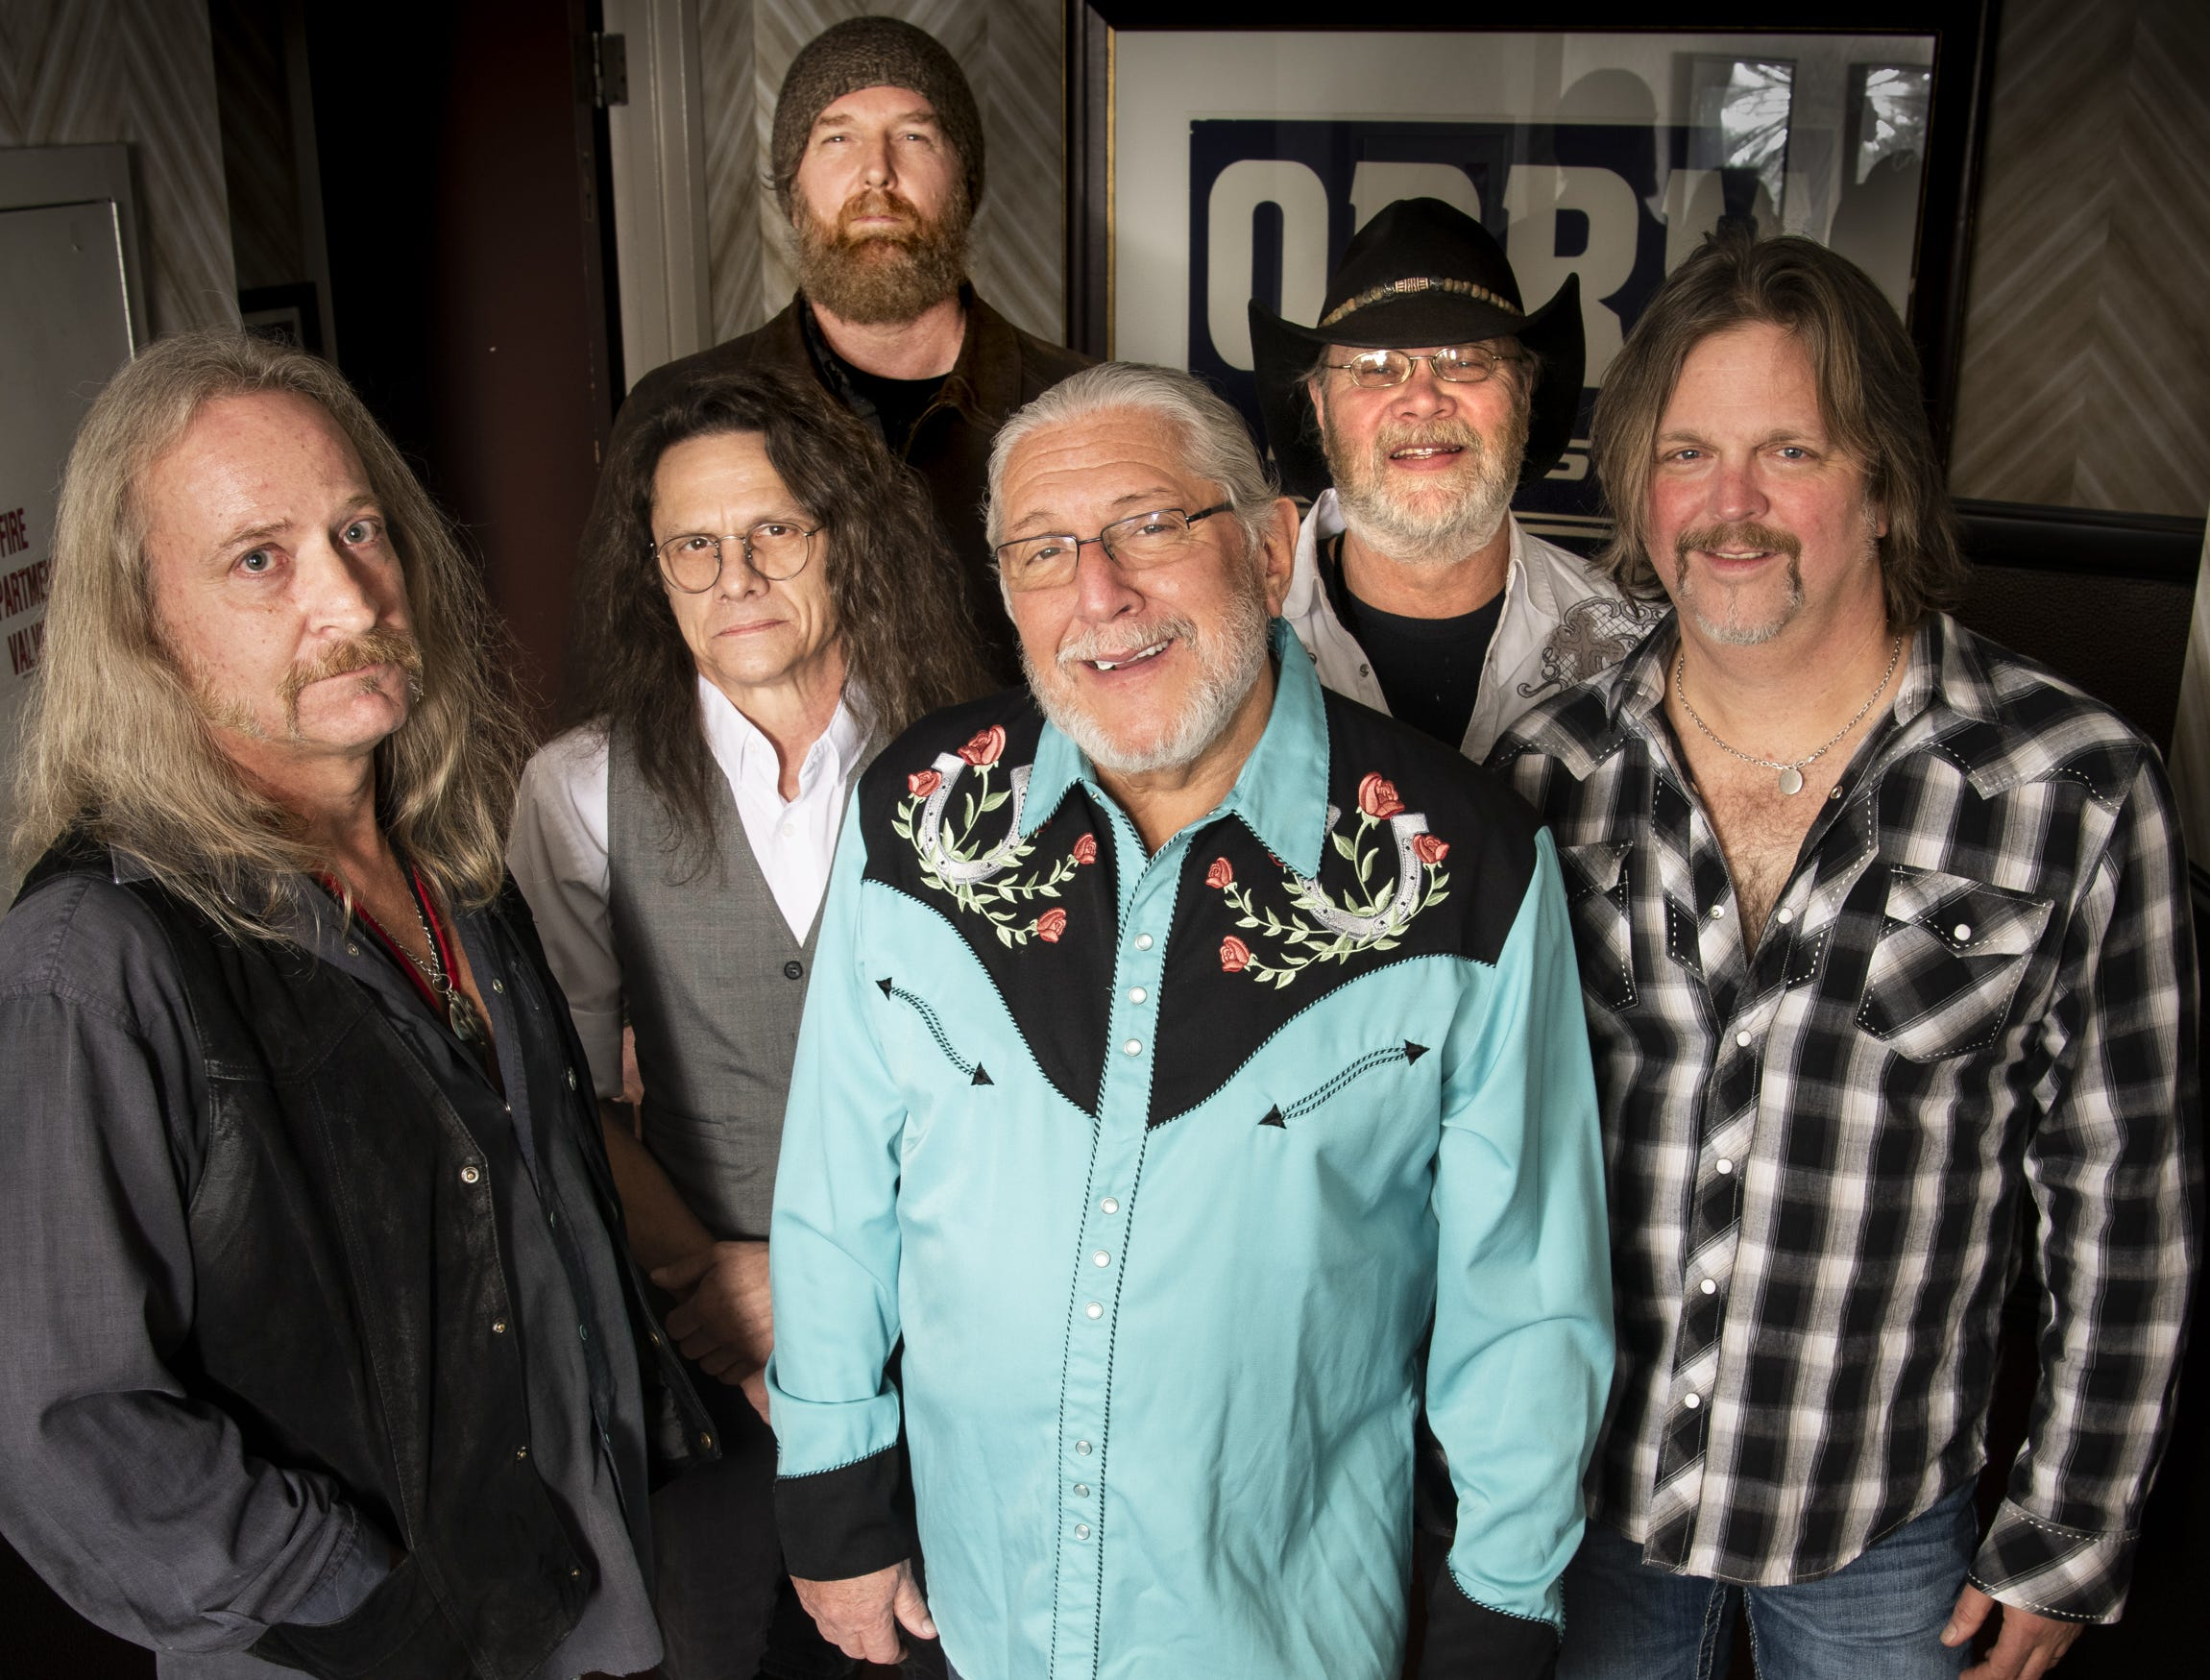 The Marshall Tucker Band is scheduled to play the Budweiser Forever Country Stage at CMA Fest 2019.